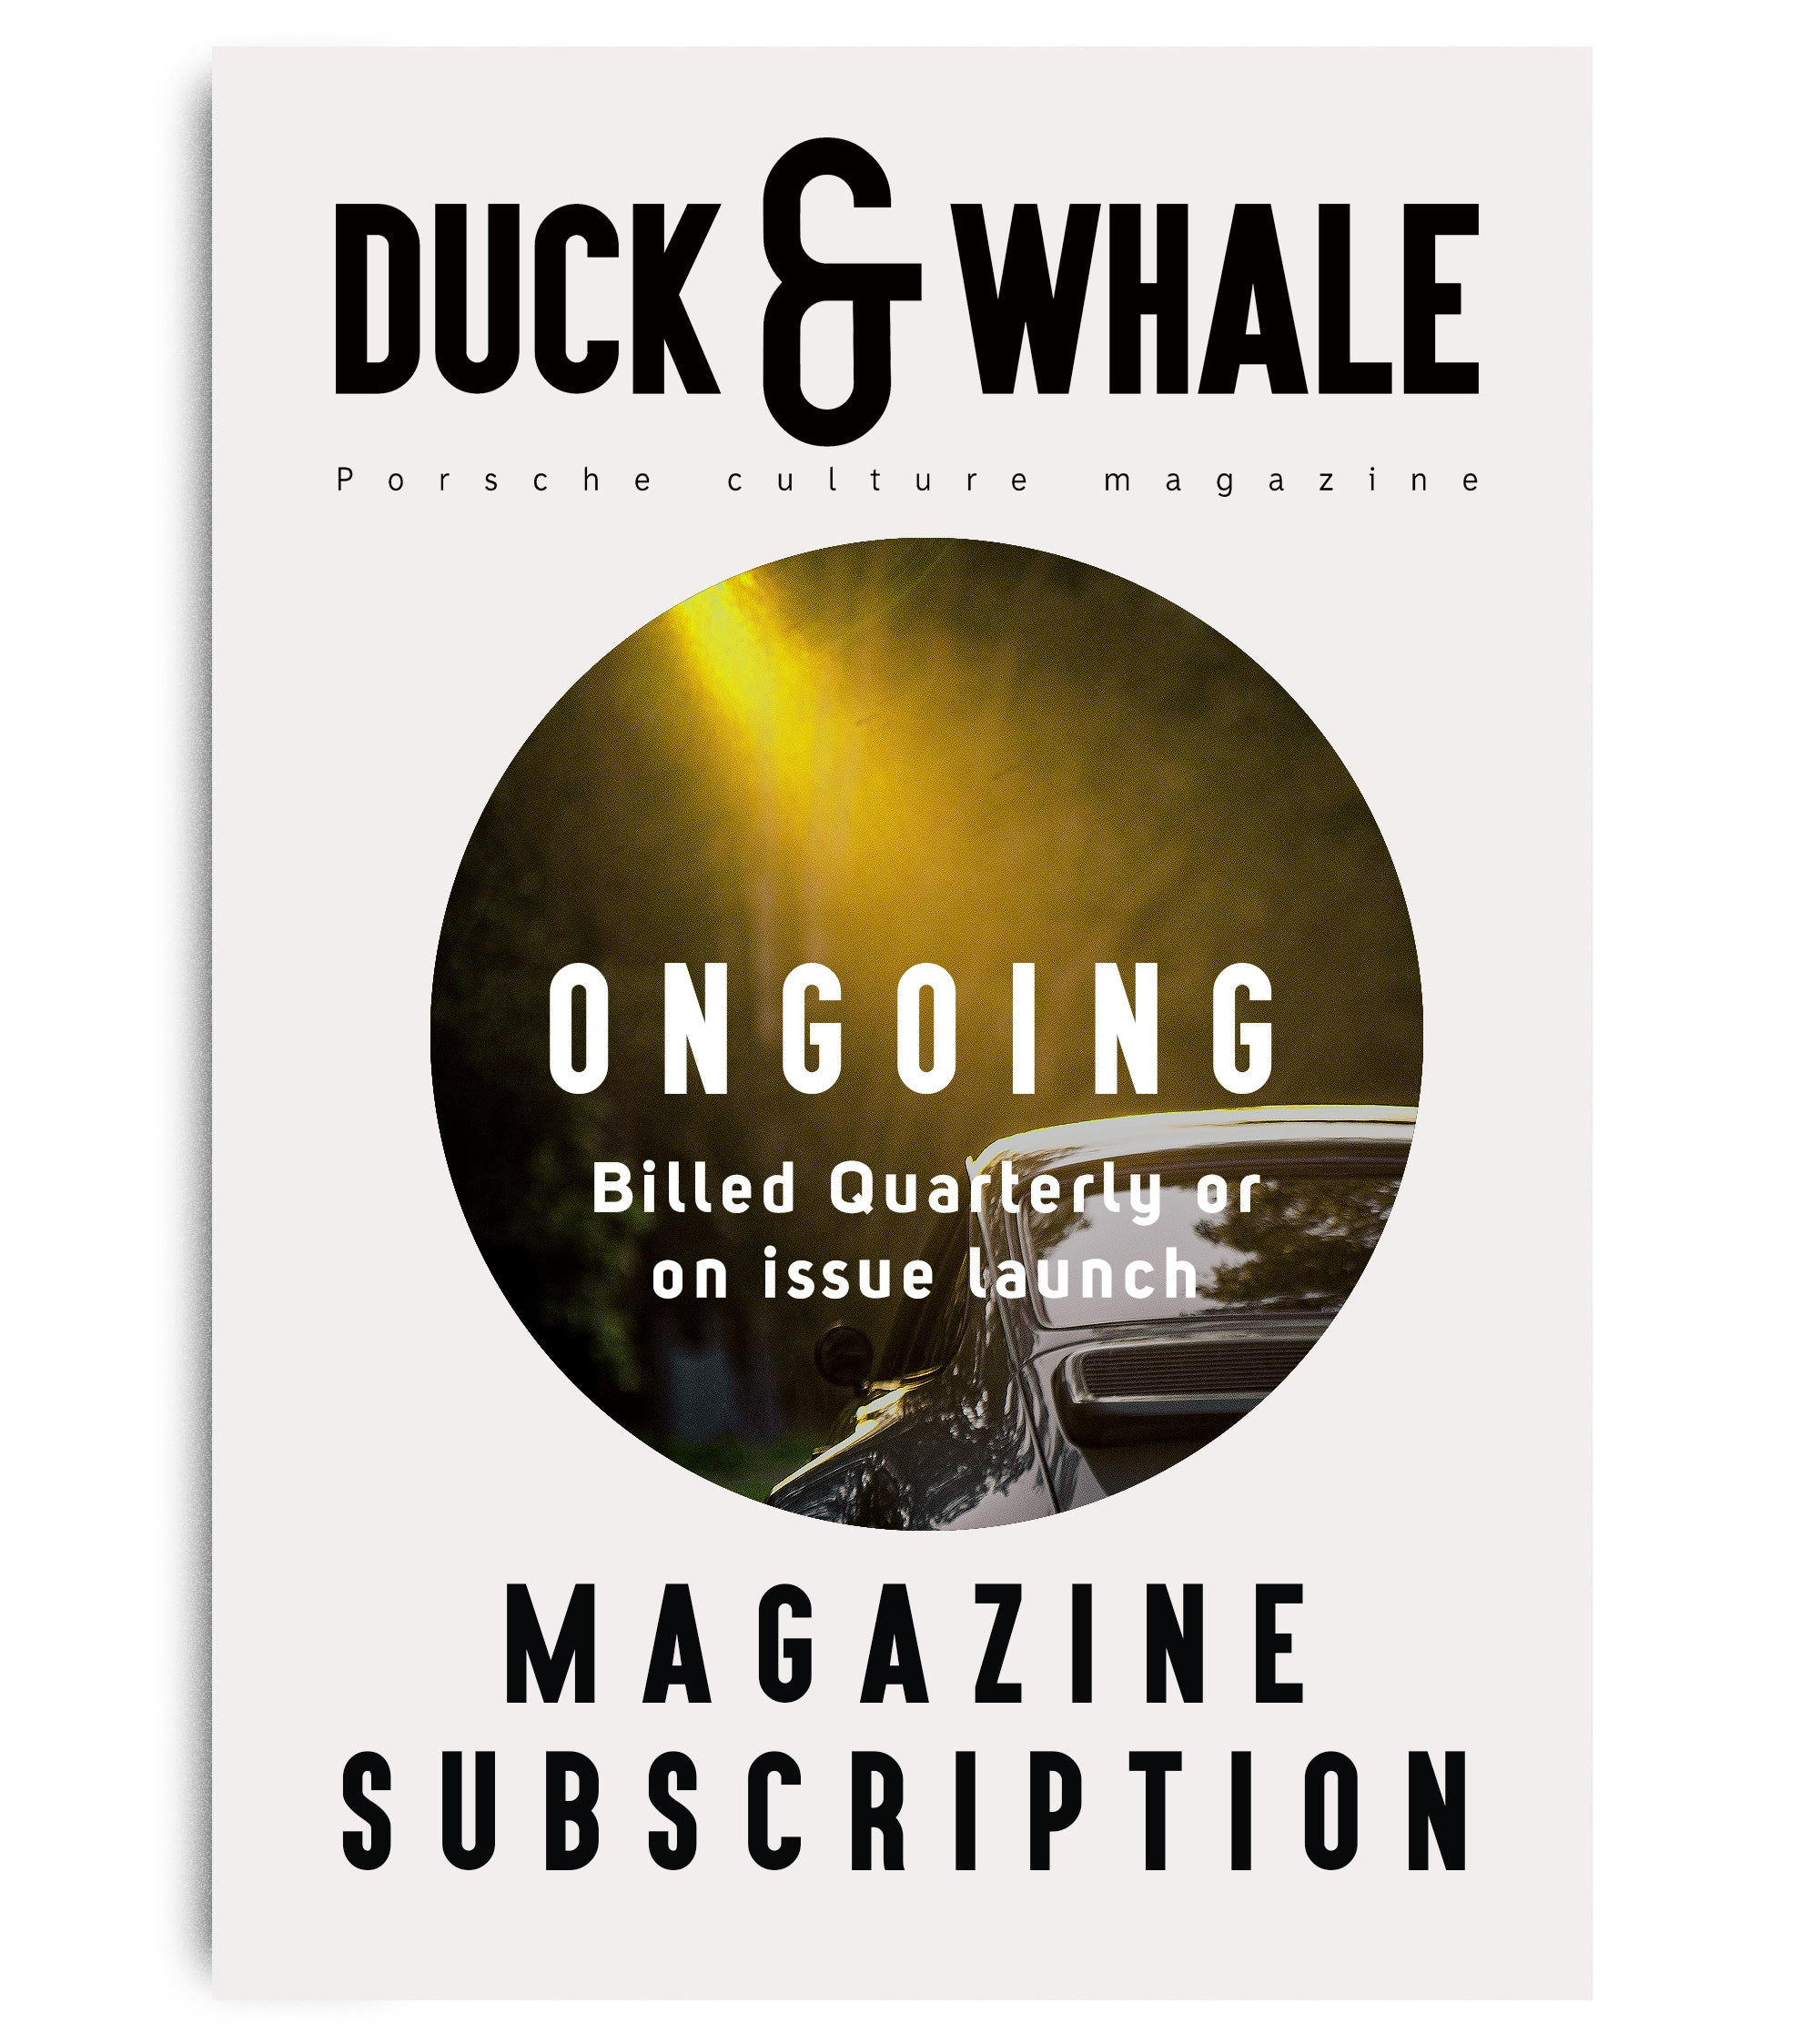 Duck & Whale Subscription - Ongoing Billed Quarterly